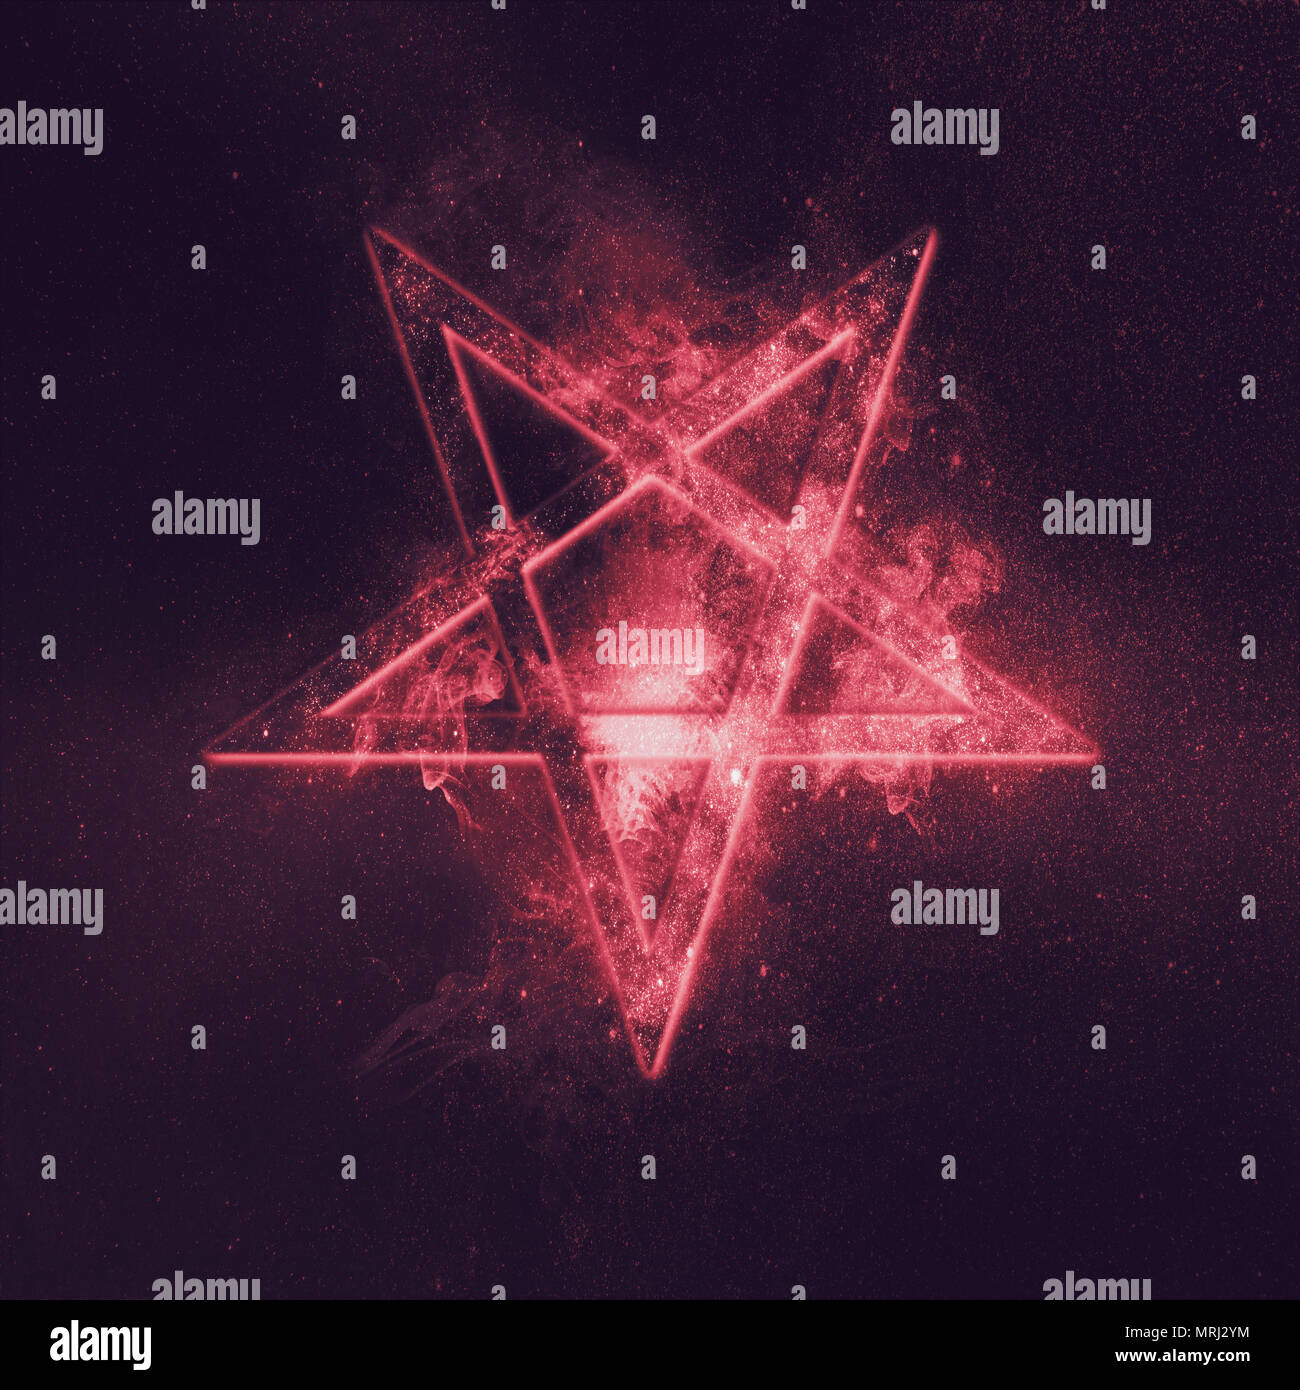 Reversed Pentagram symbol. Abstract night sky background. - Stock Image